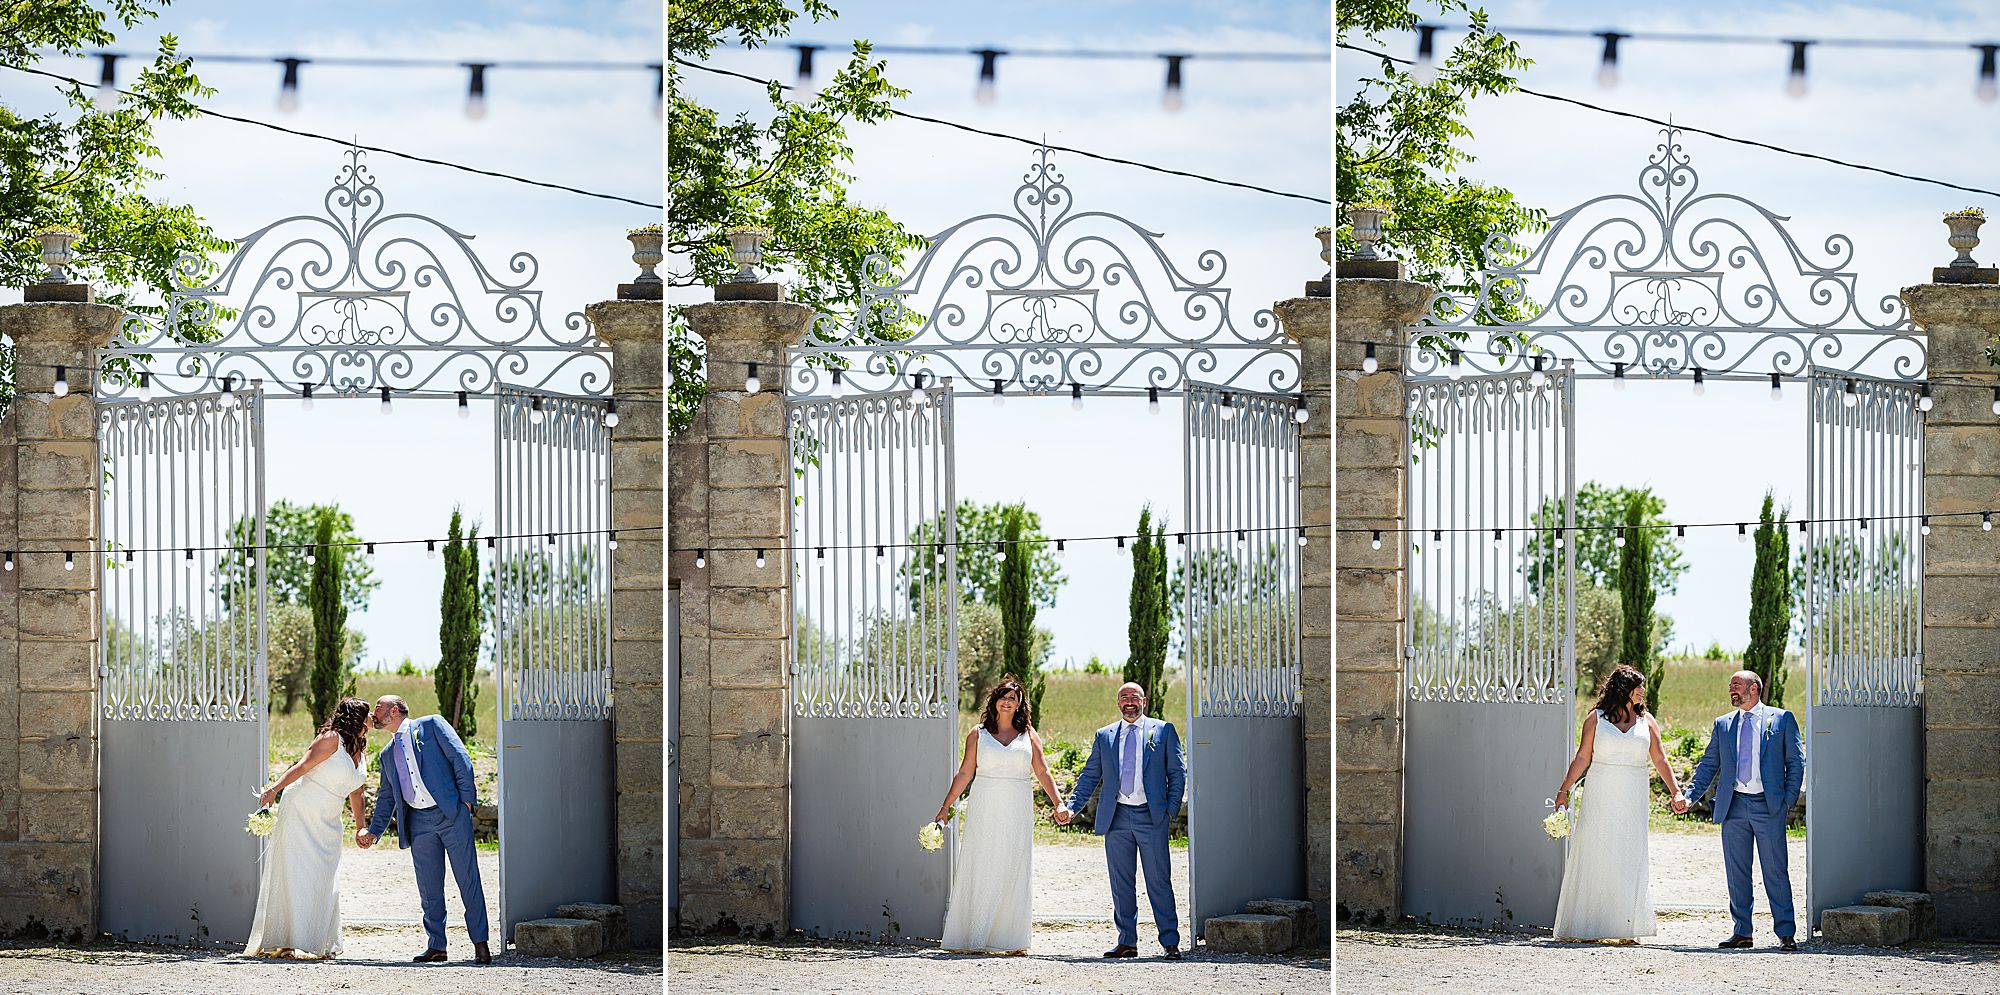 the gates at Domaine de la Grangette wedding